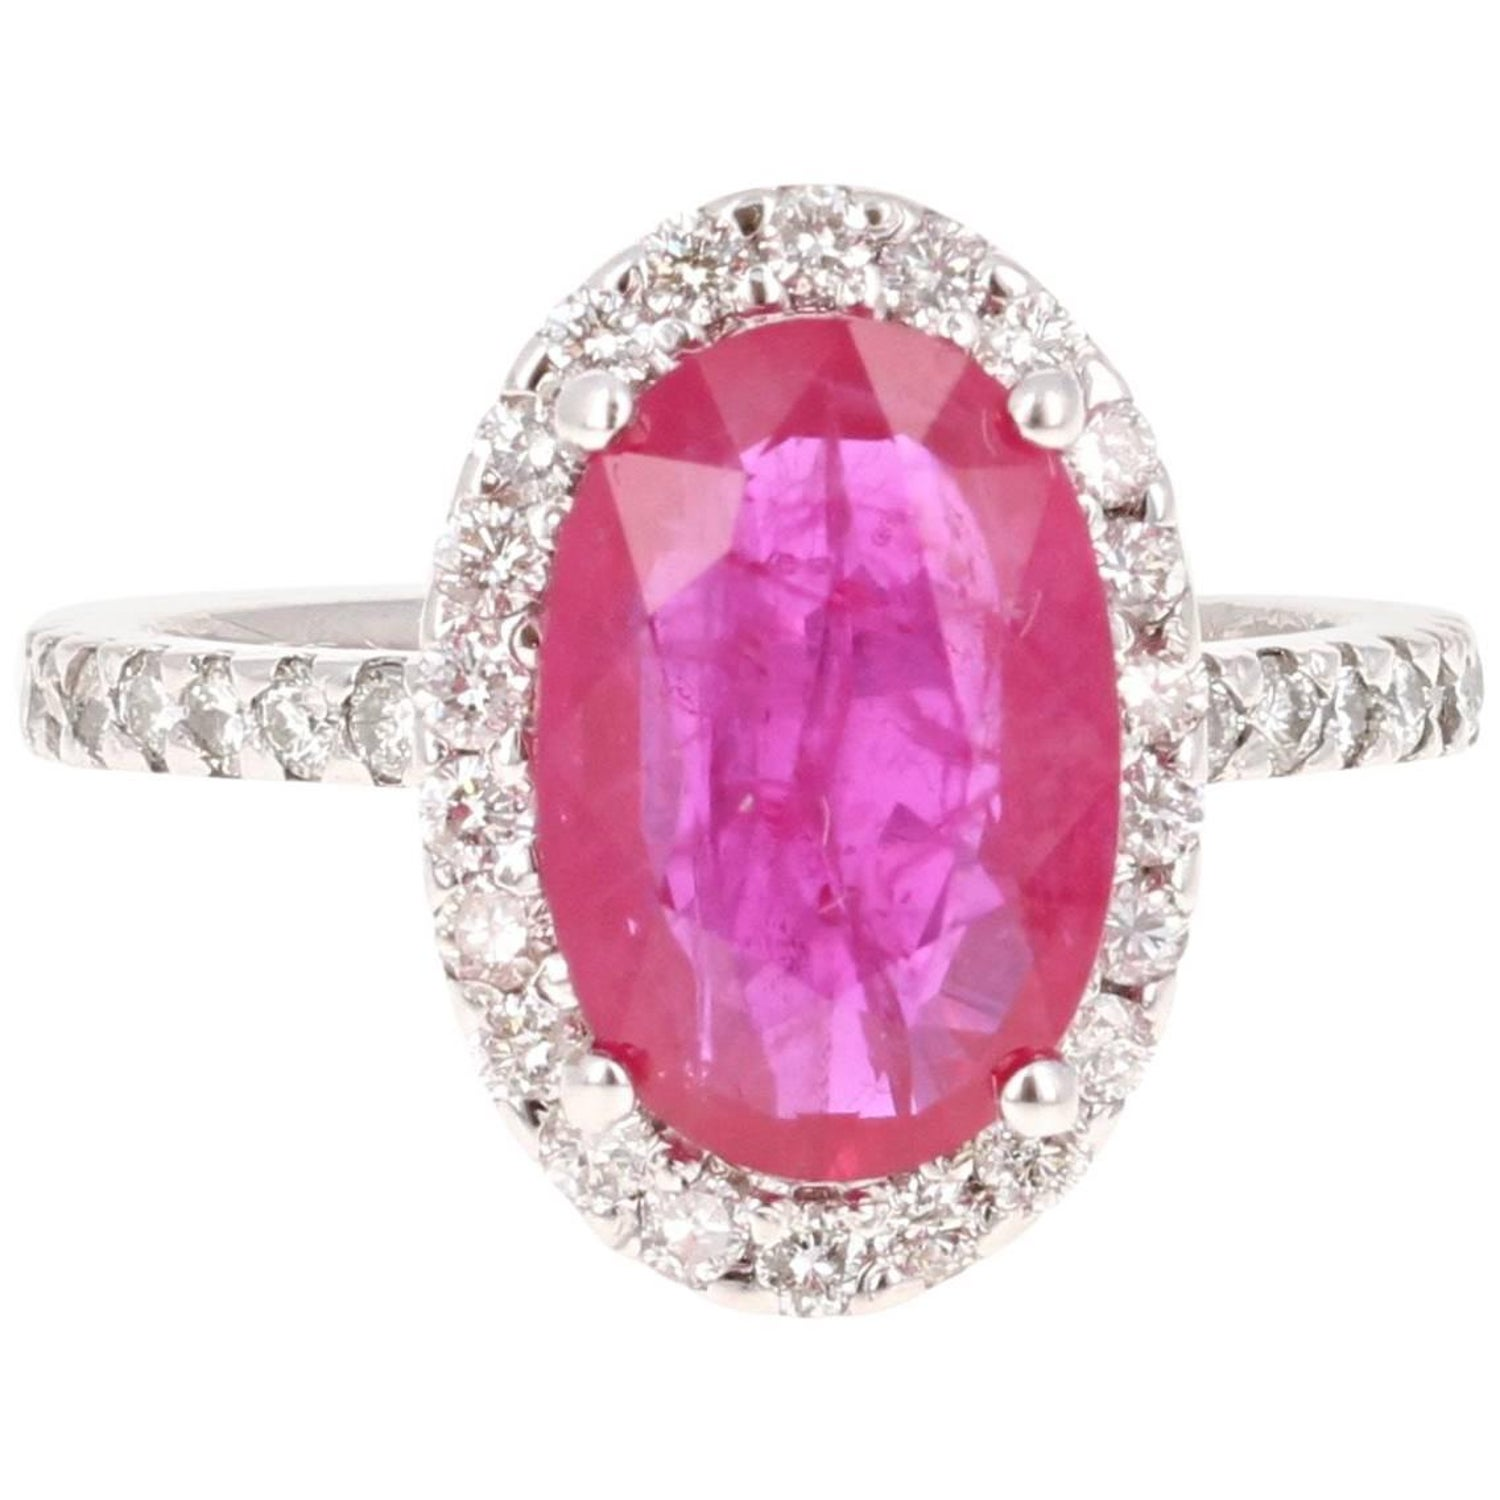 Oval Ruby and Diamonds Halo Ring For Sale at 1stdibs